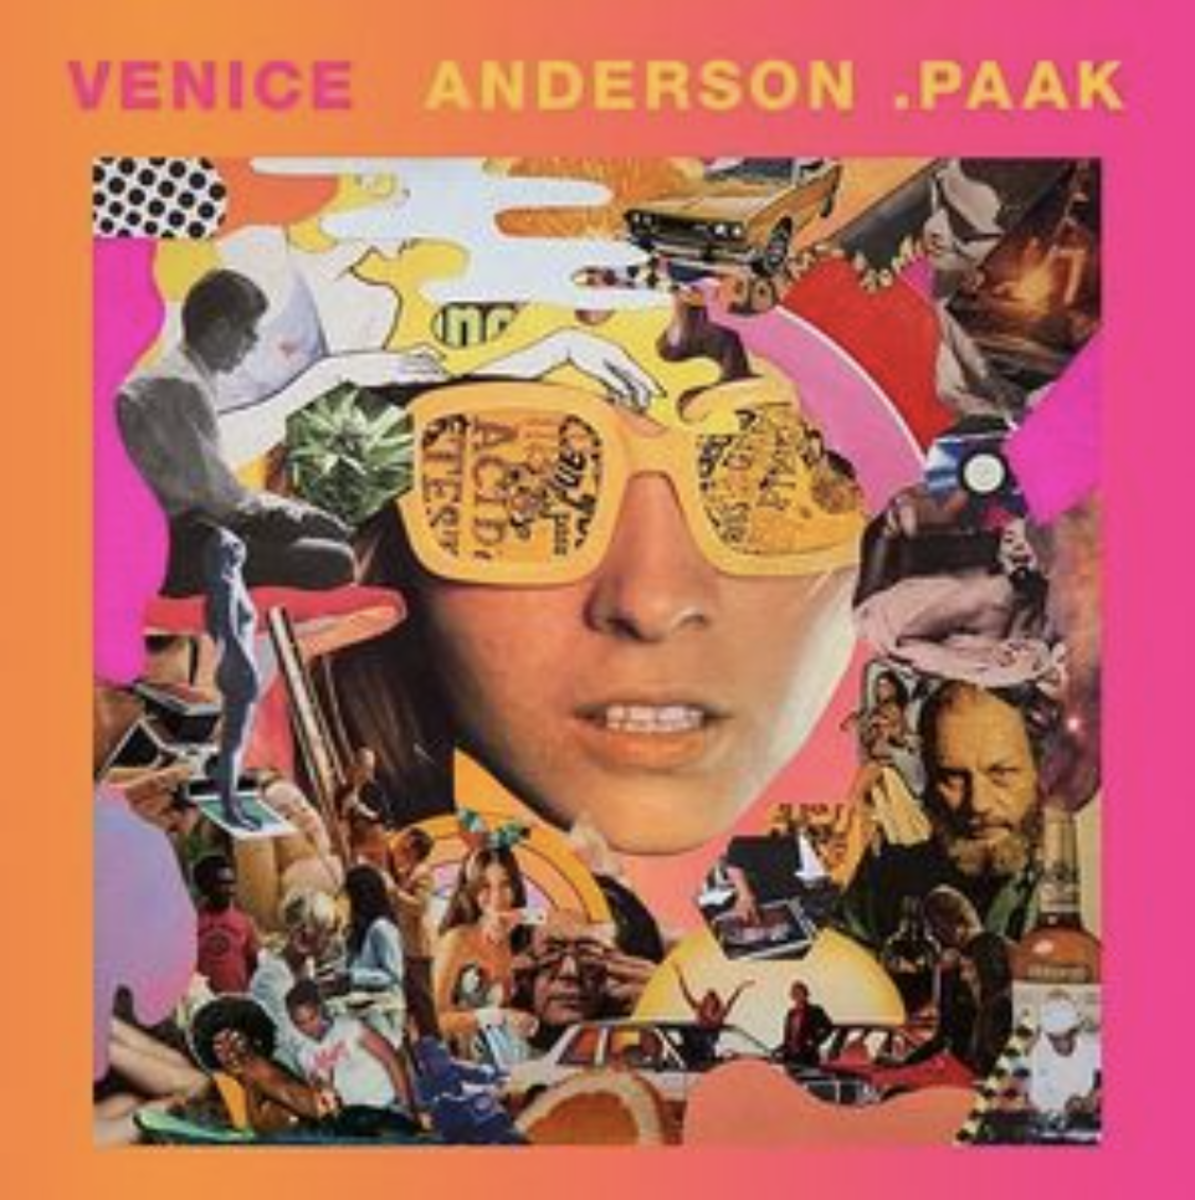 Anderson Paak: PhD in Psychology?